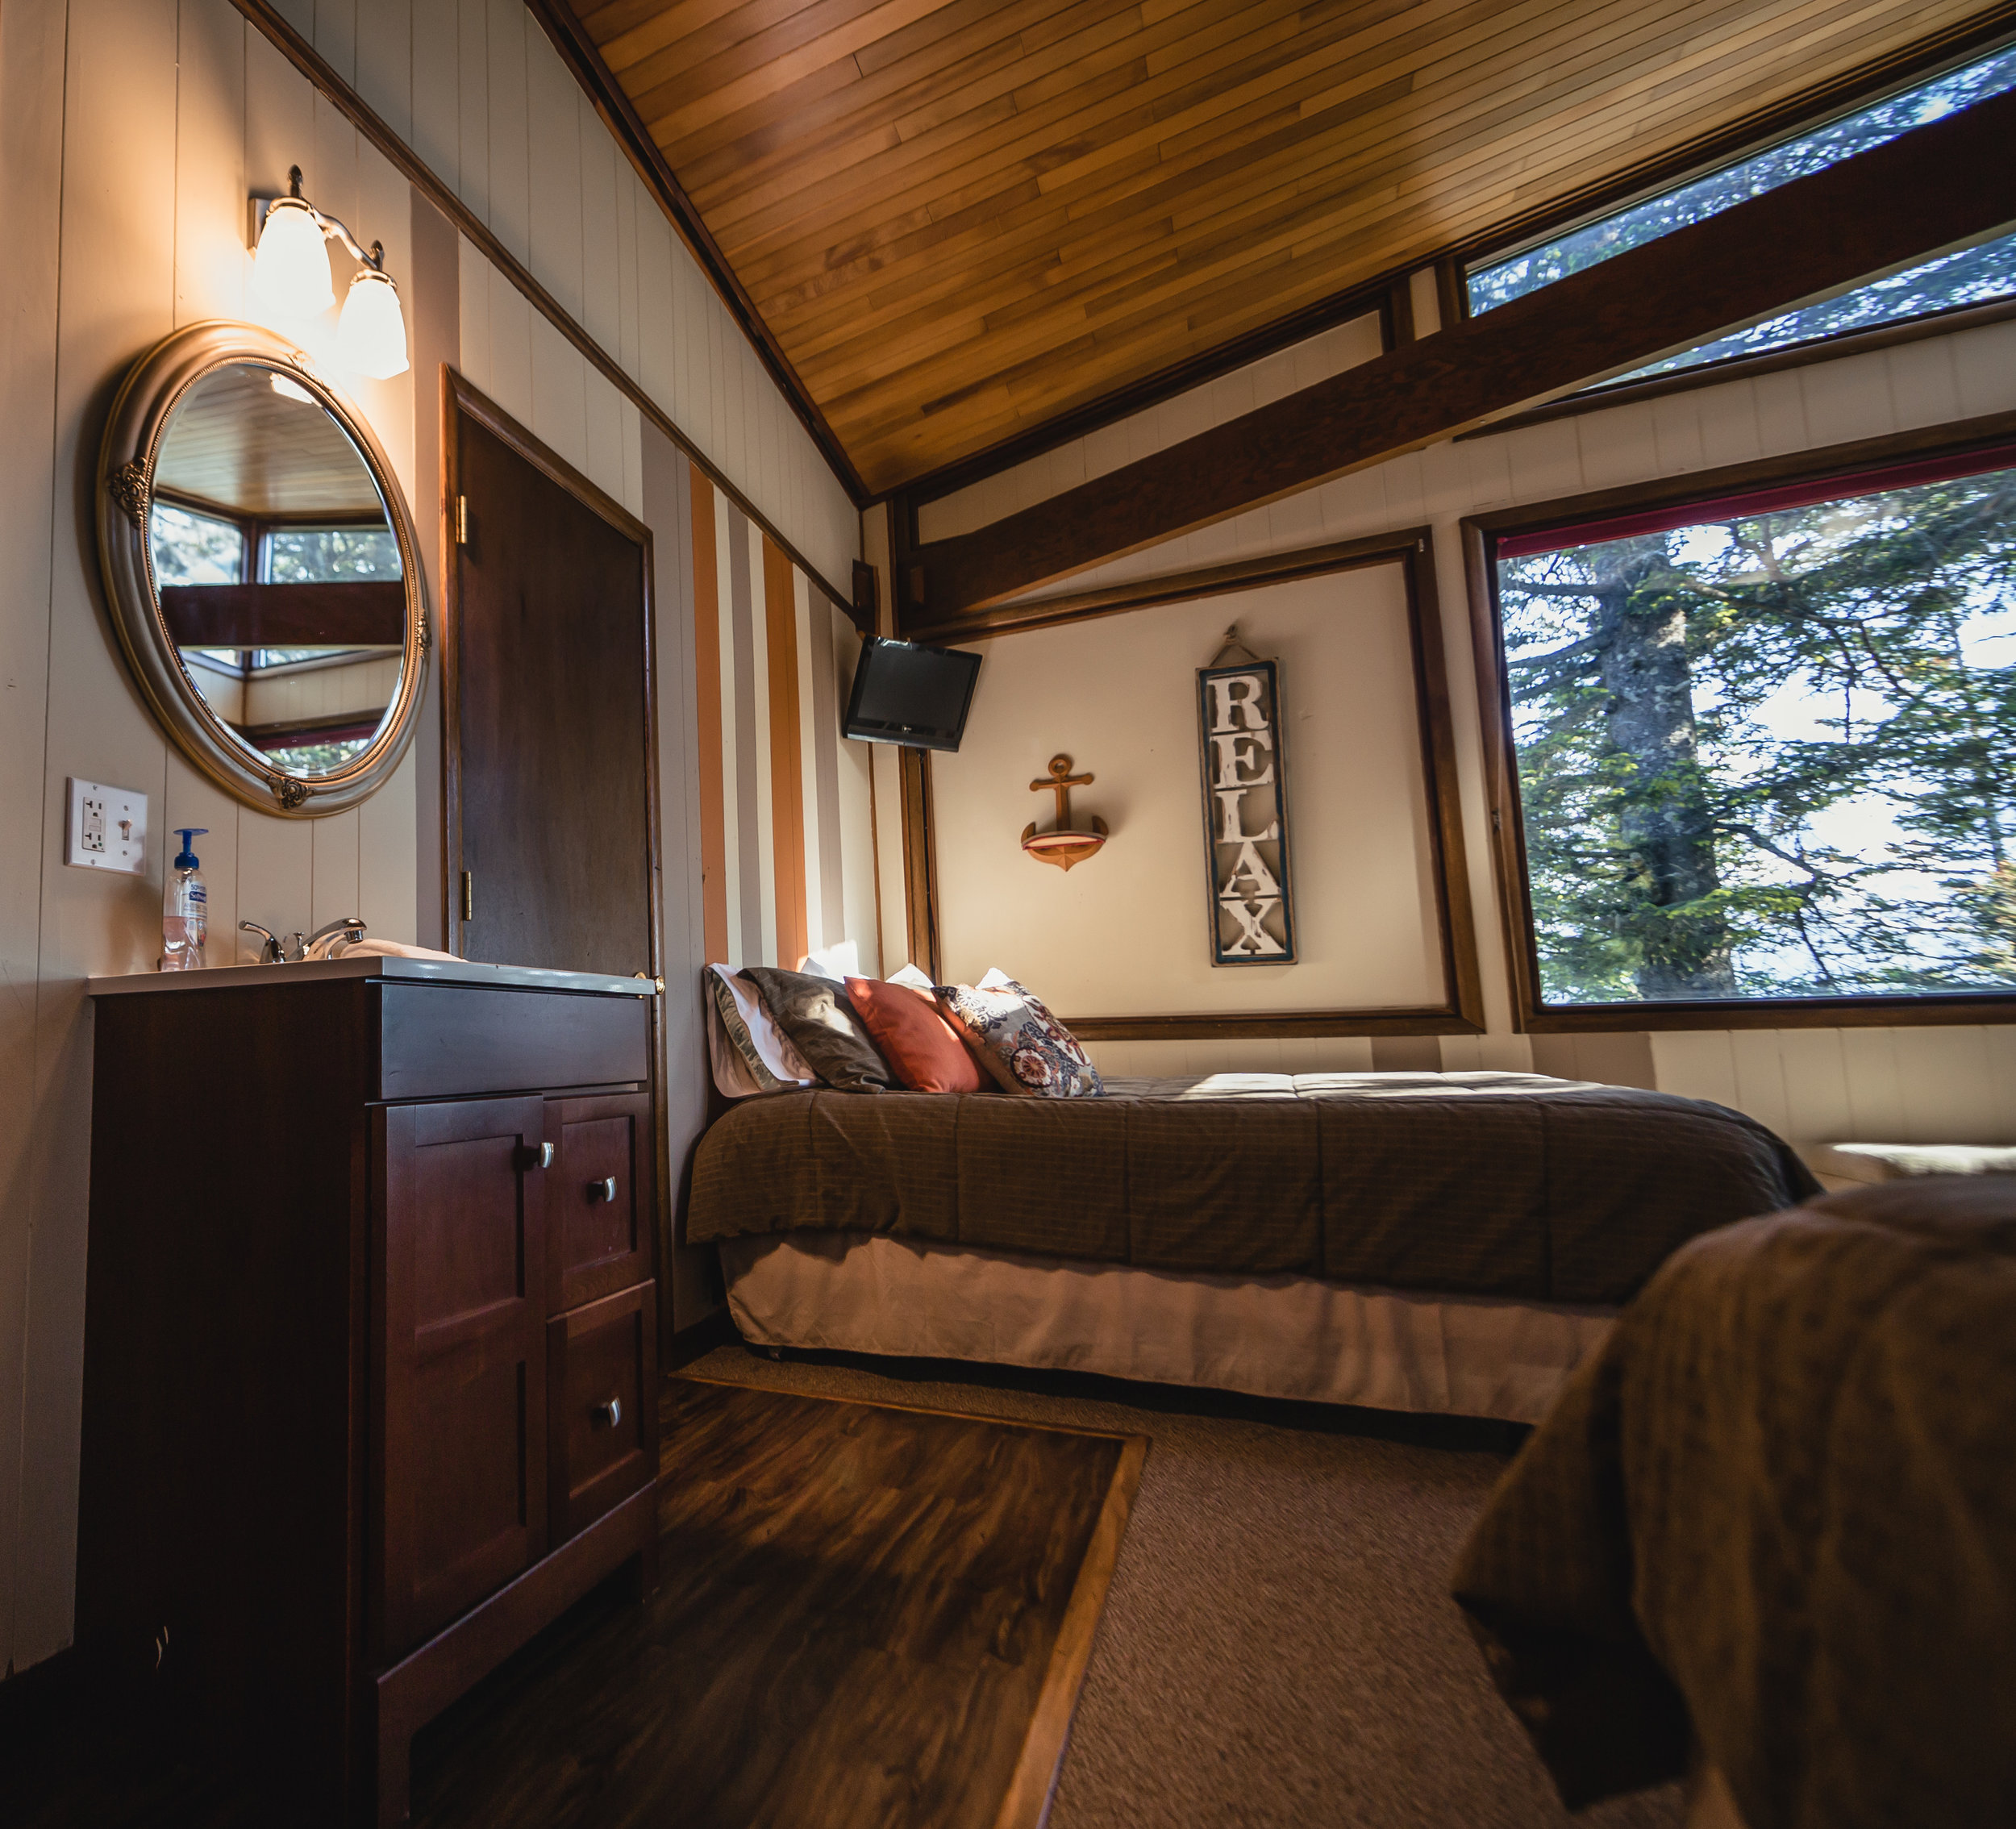 2019-06-06_The_Timber_House_Photo (9 of 37).jpg